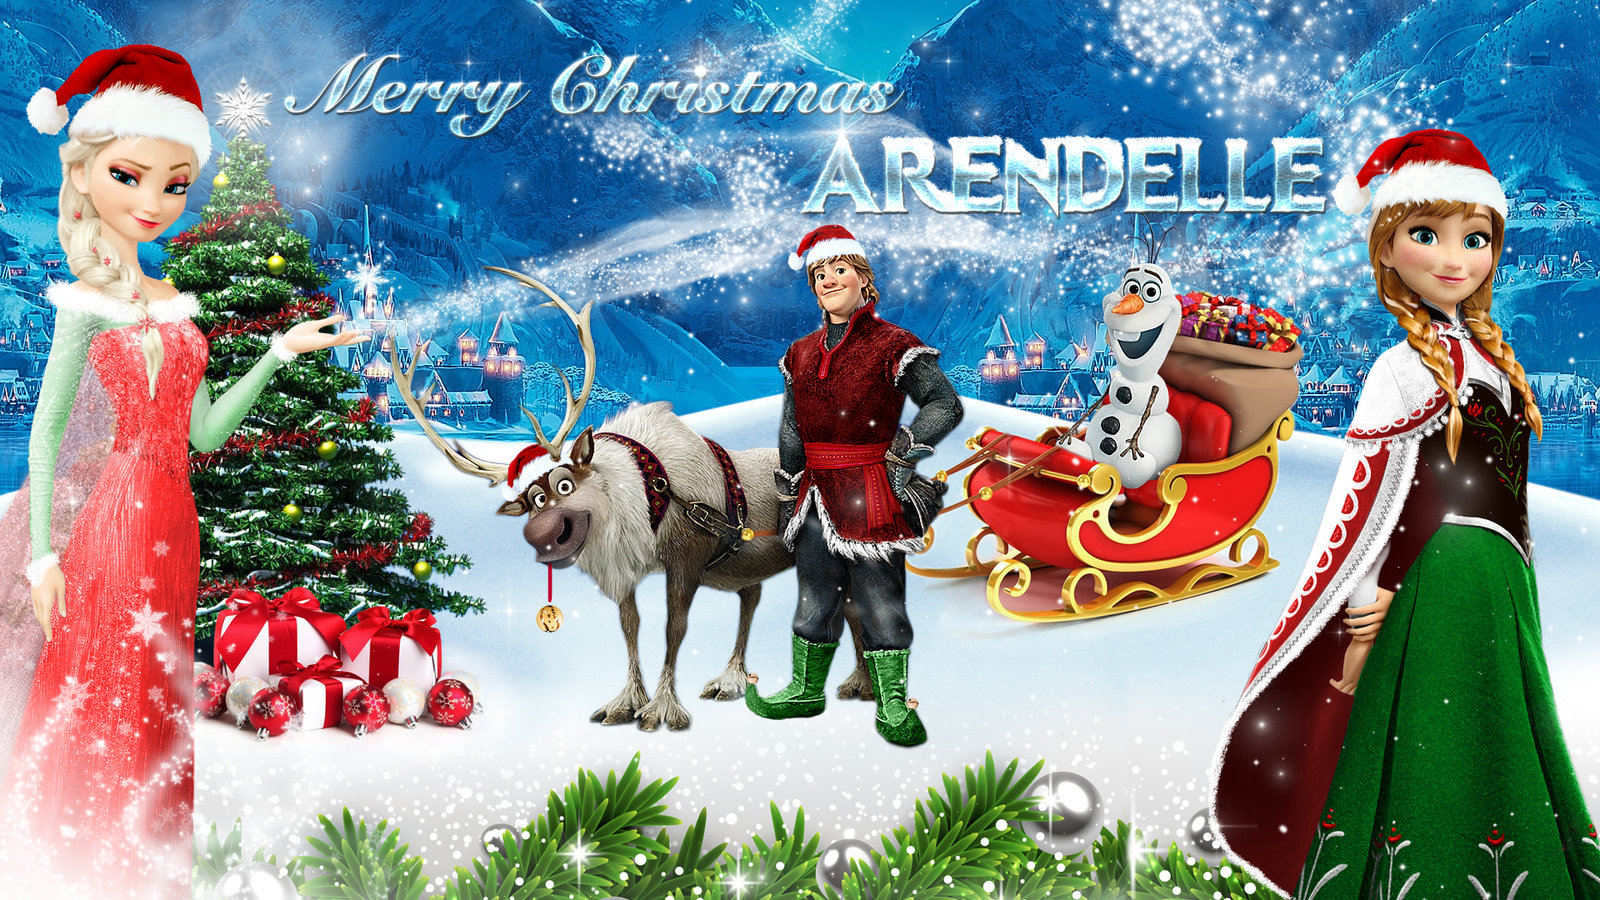 Frozen   1920x1080 Merry Christmas Arendelle 2 by CoGraphiC on 1600x900